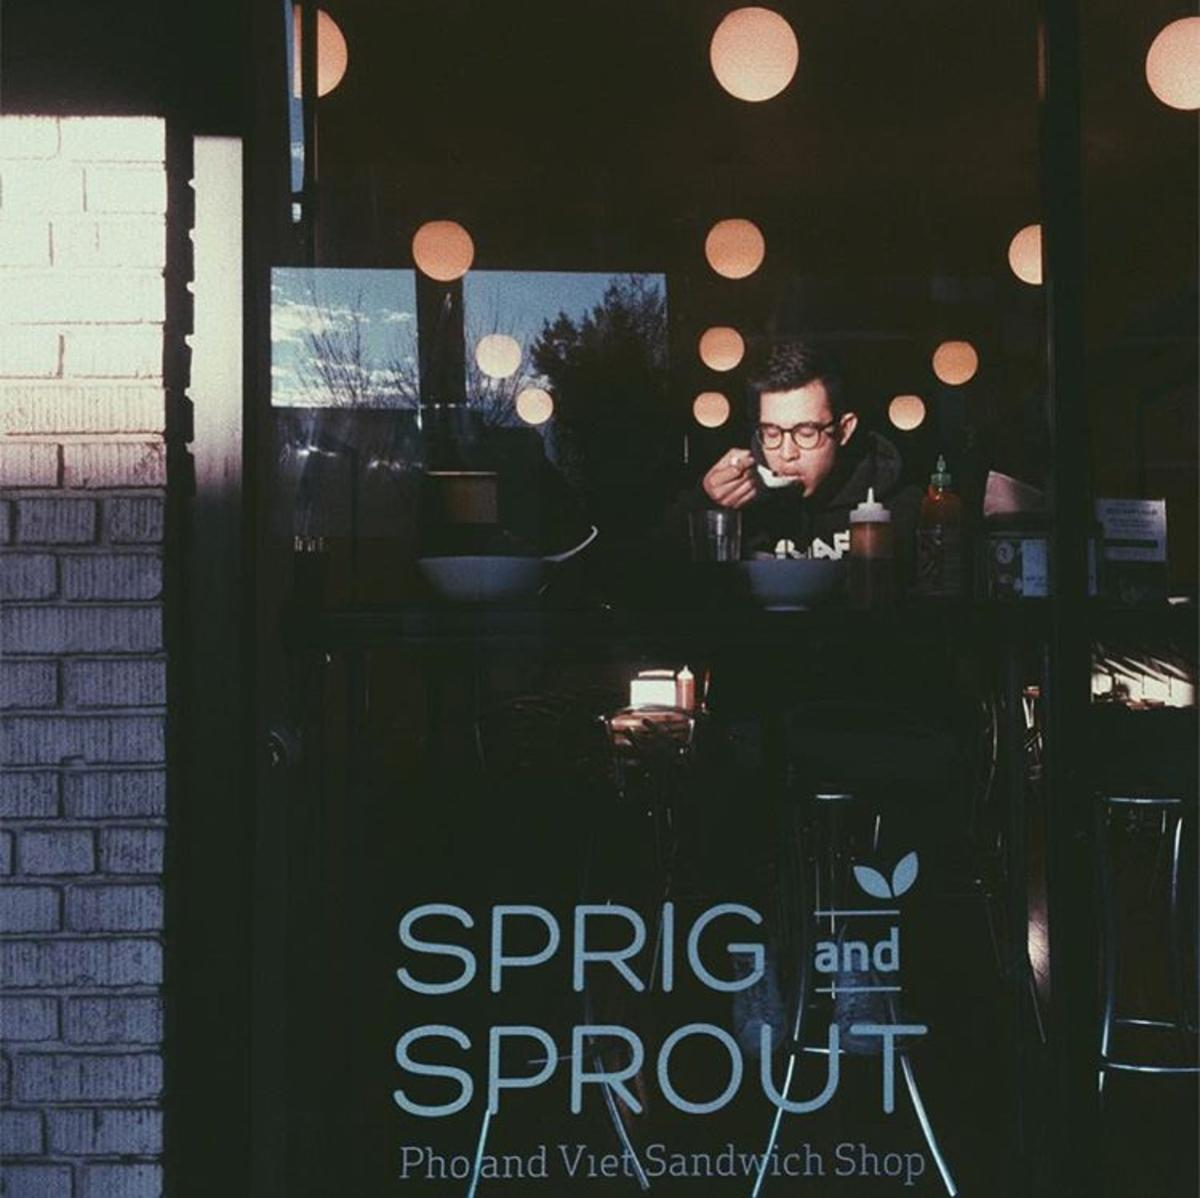 Sprig and Sprout is a popular spot for Pho and other Vietnamese dishes. (Salo Aburto/@therealsasso)